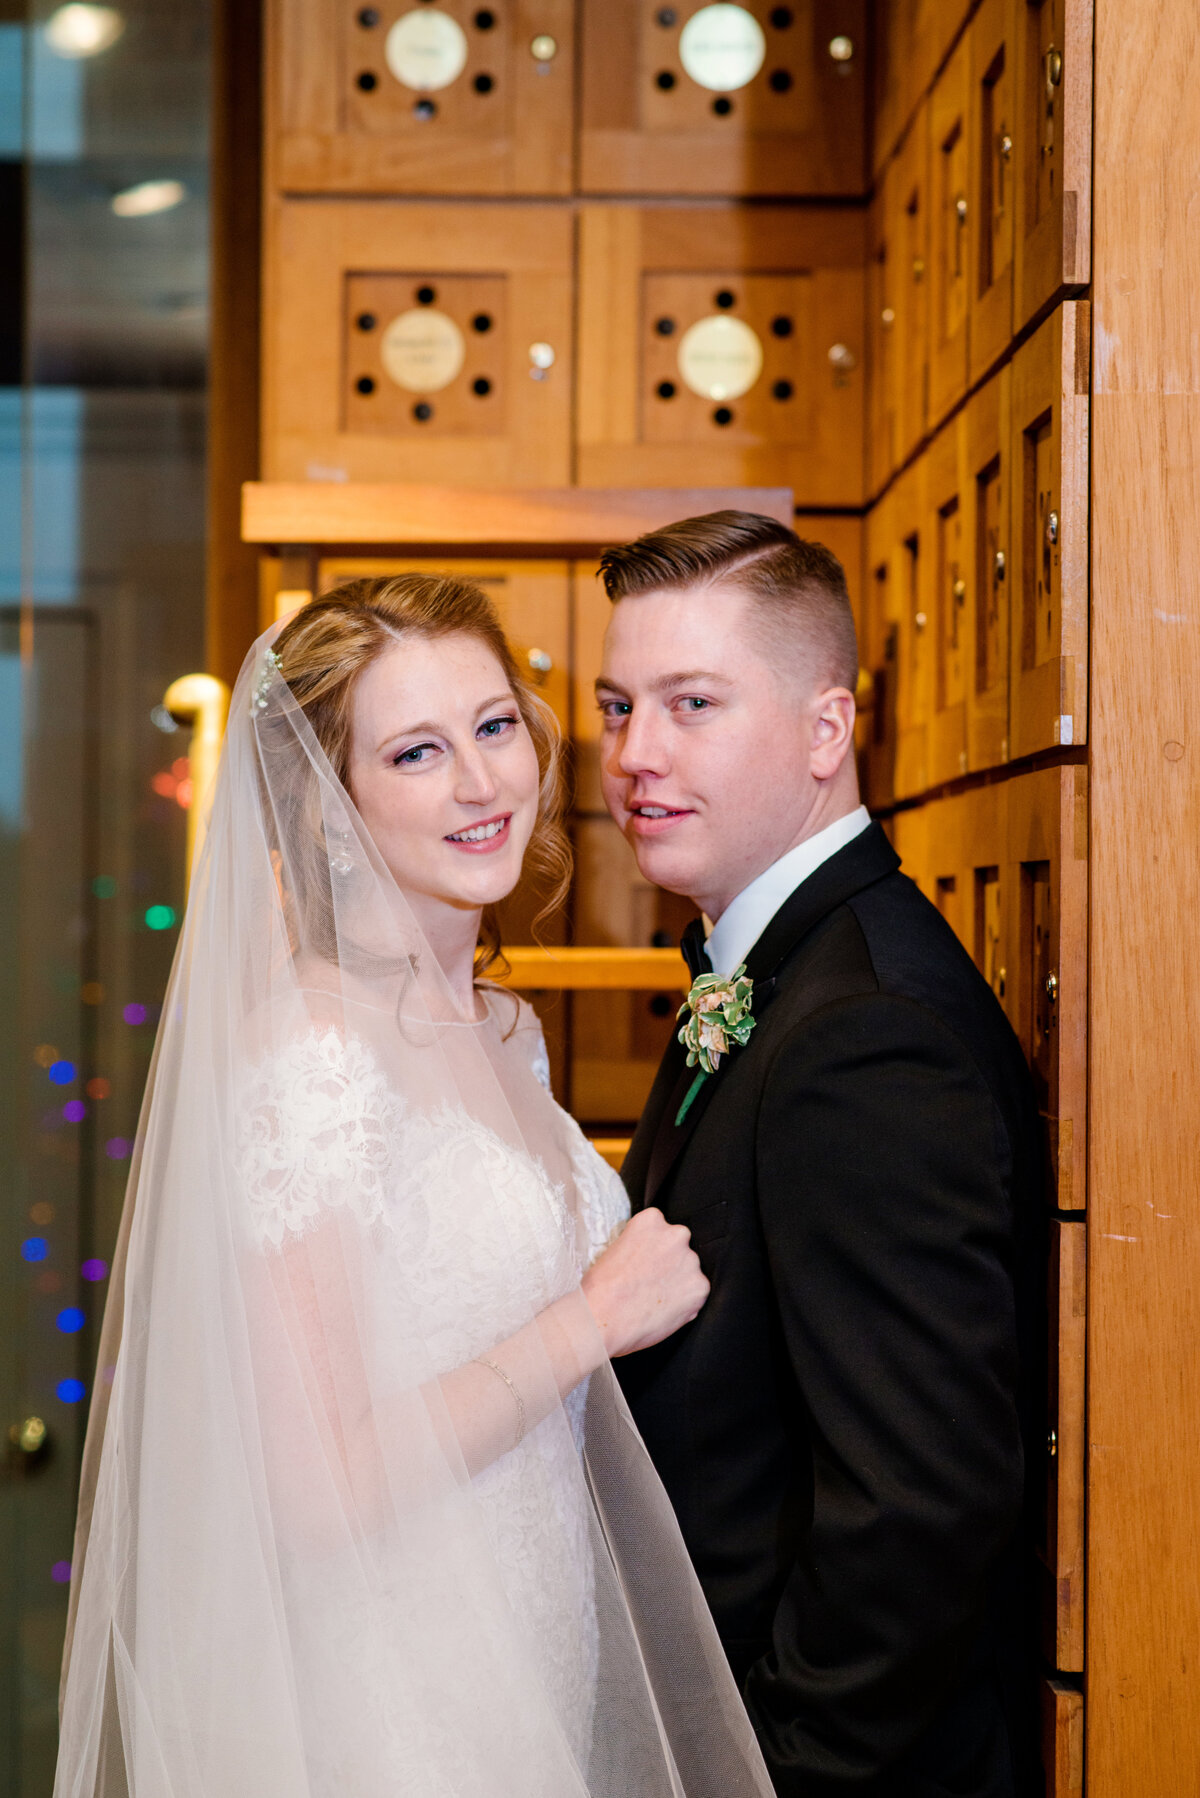 photo of bride and groom indoors from wedding reception at The Carltun